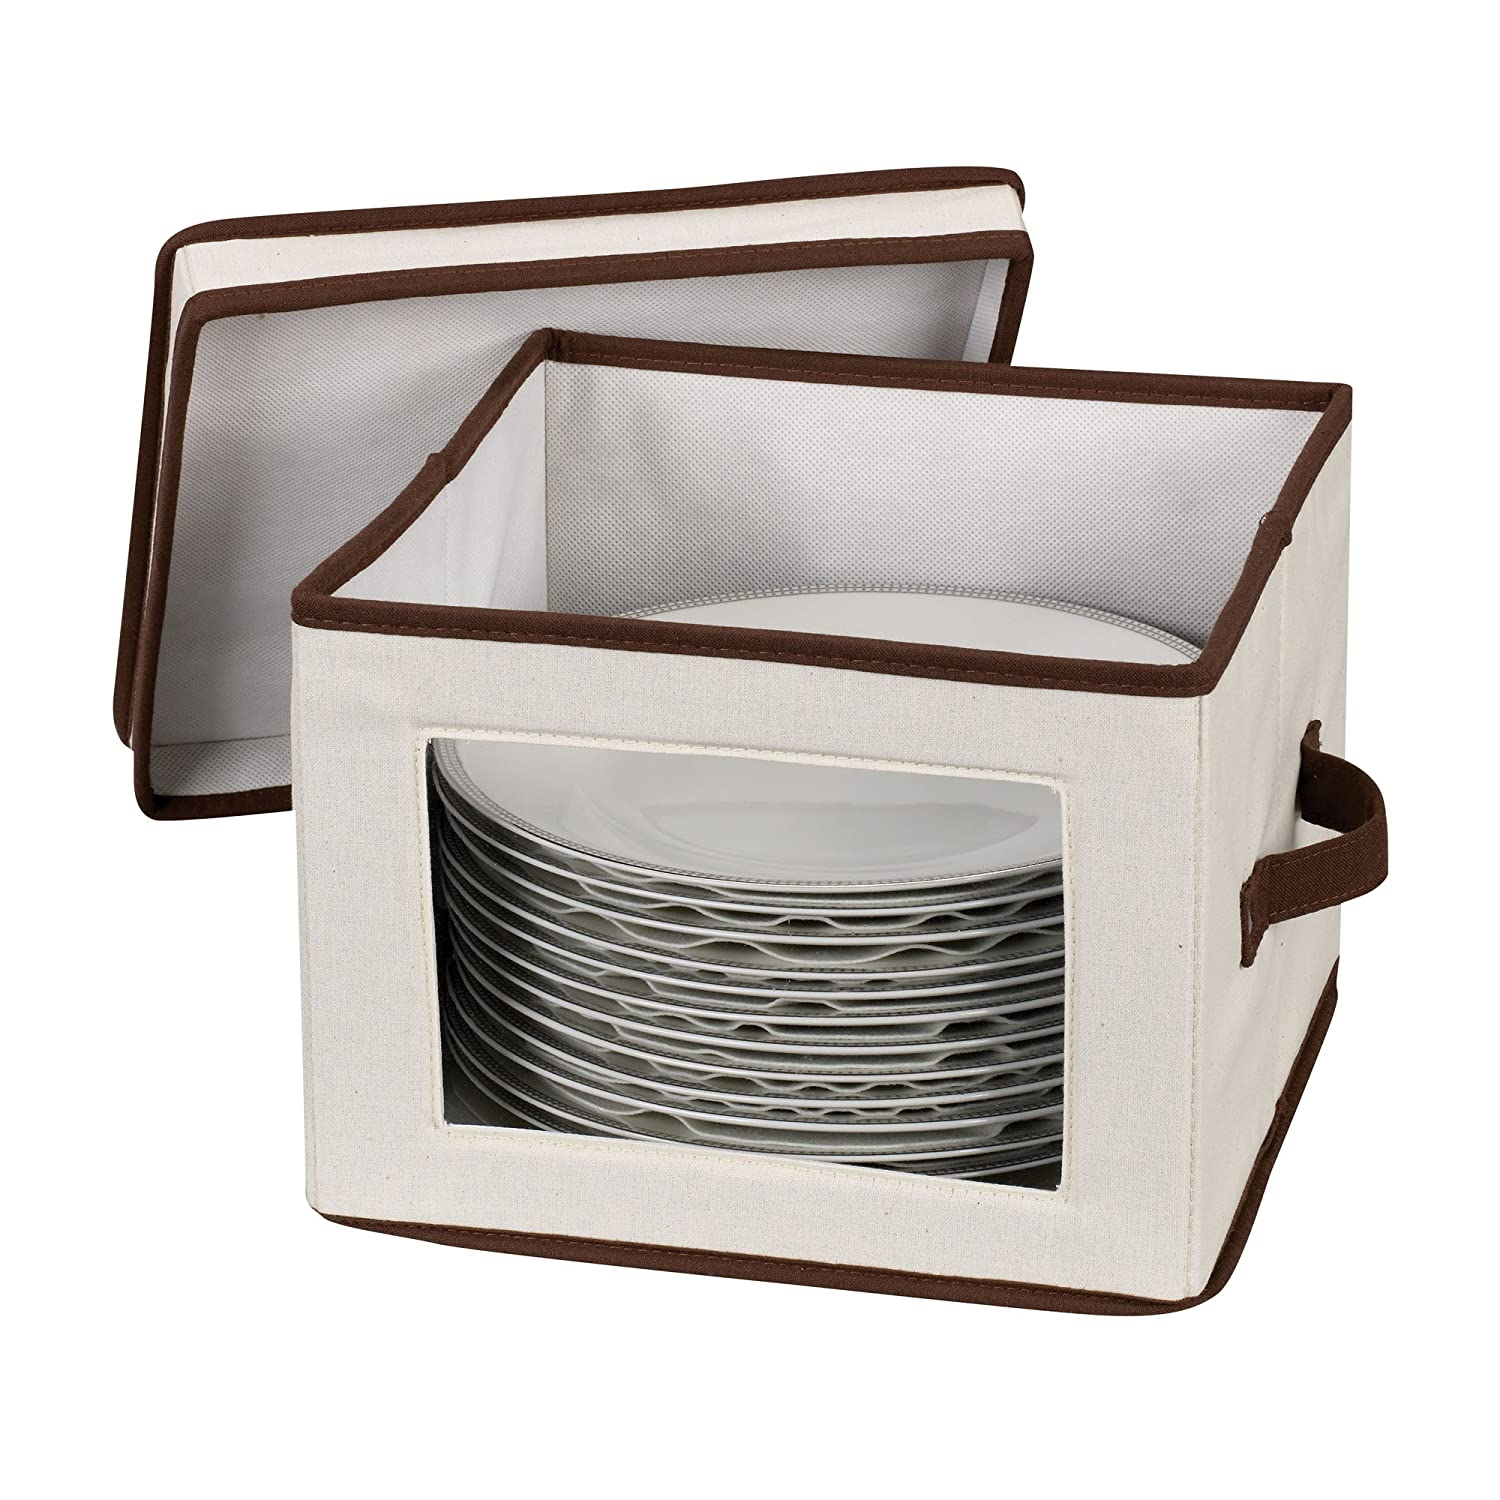 Amazoncom Household Essentials 536 Dinnerware Storage Box with Lid